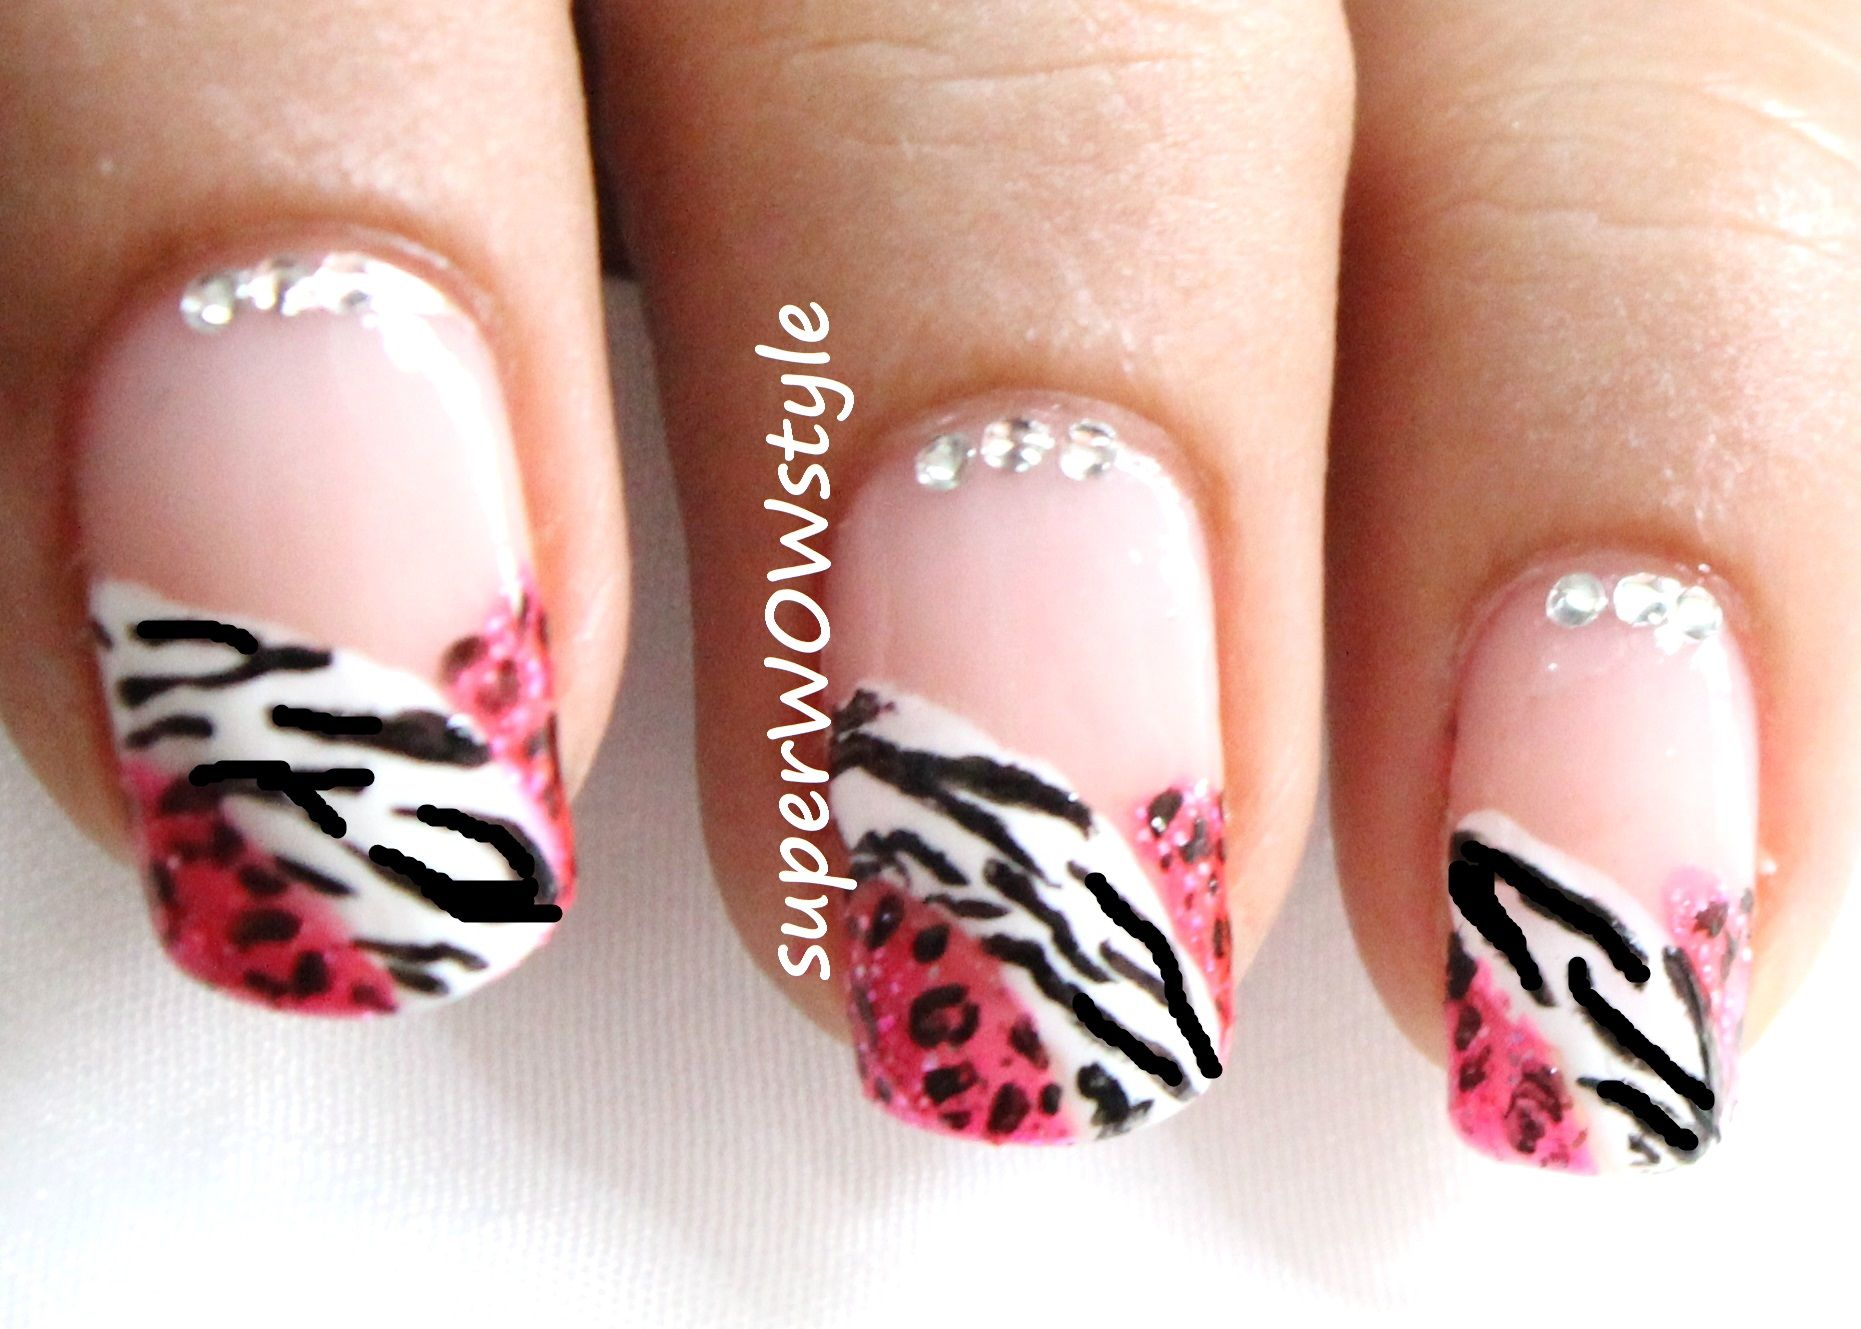 Incoco french manicure designs put a twist on the traditional french ...